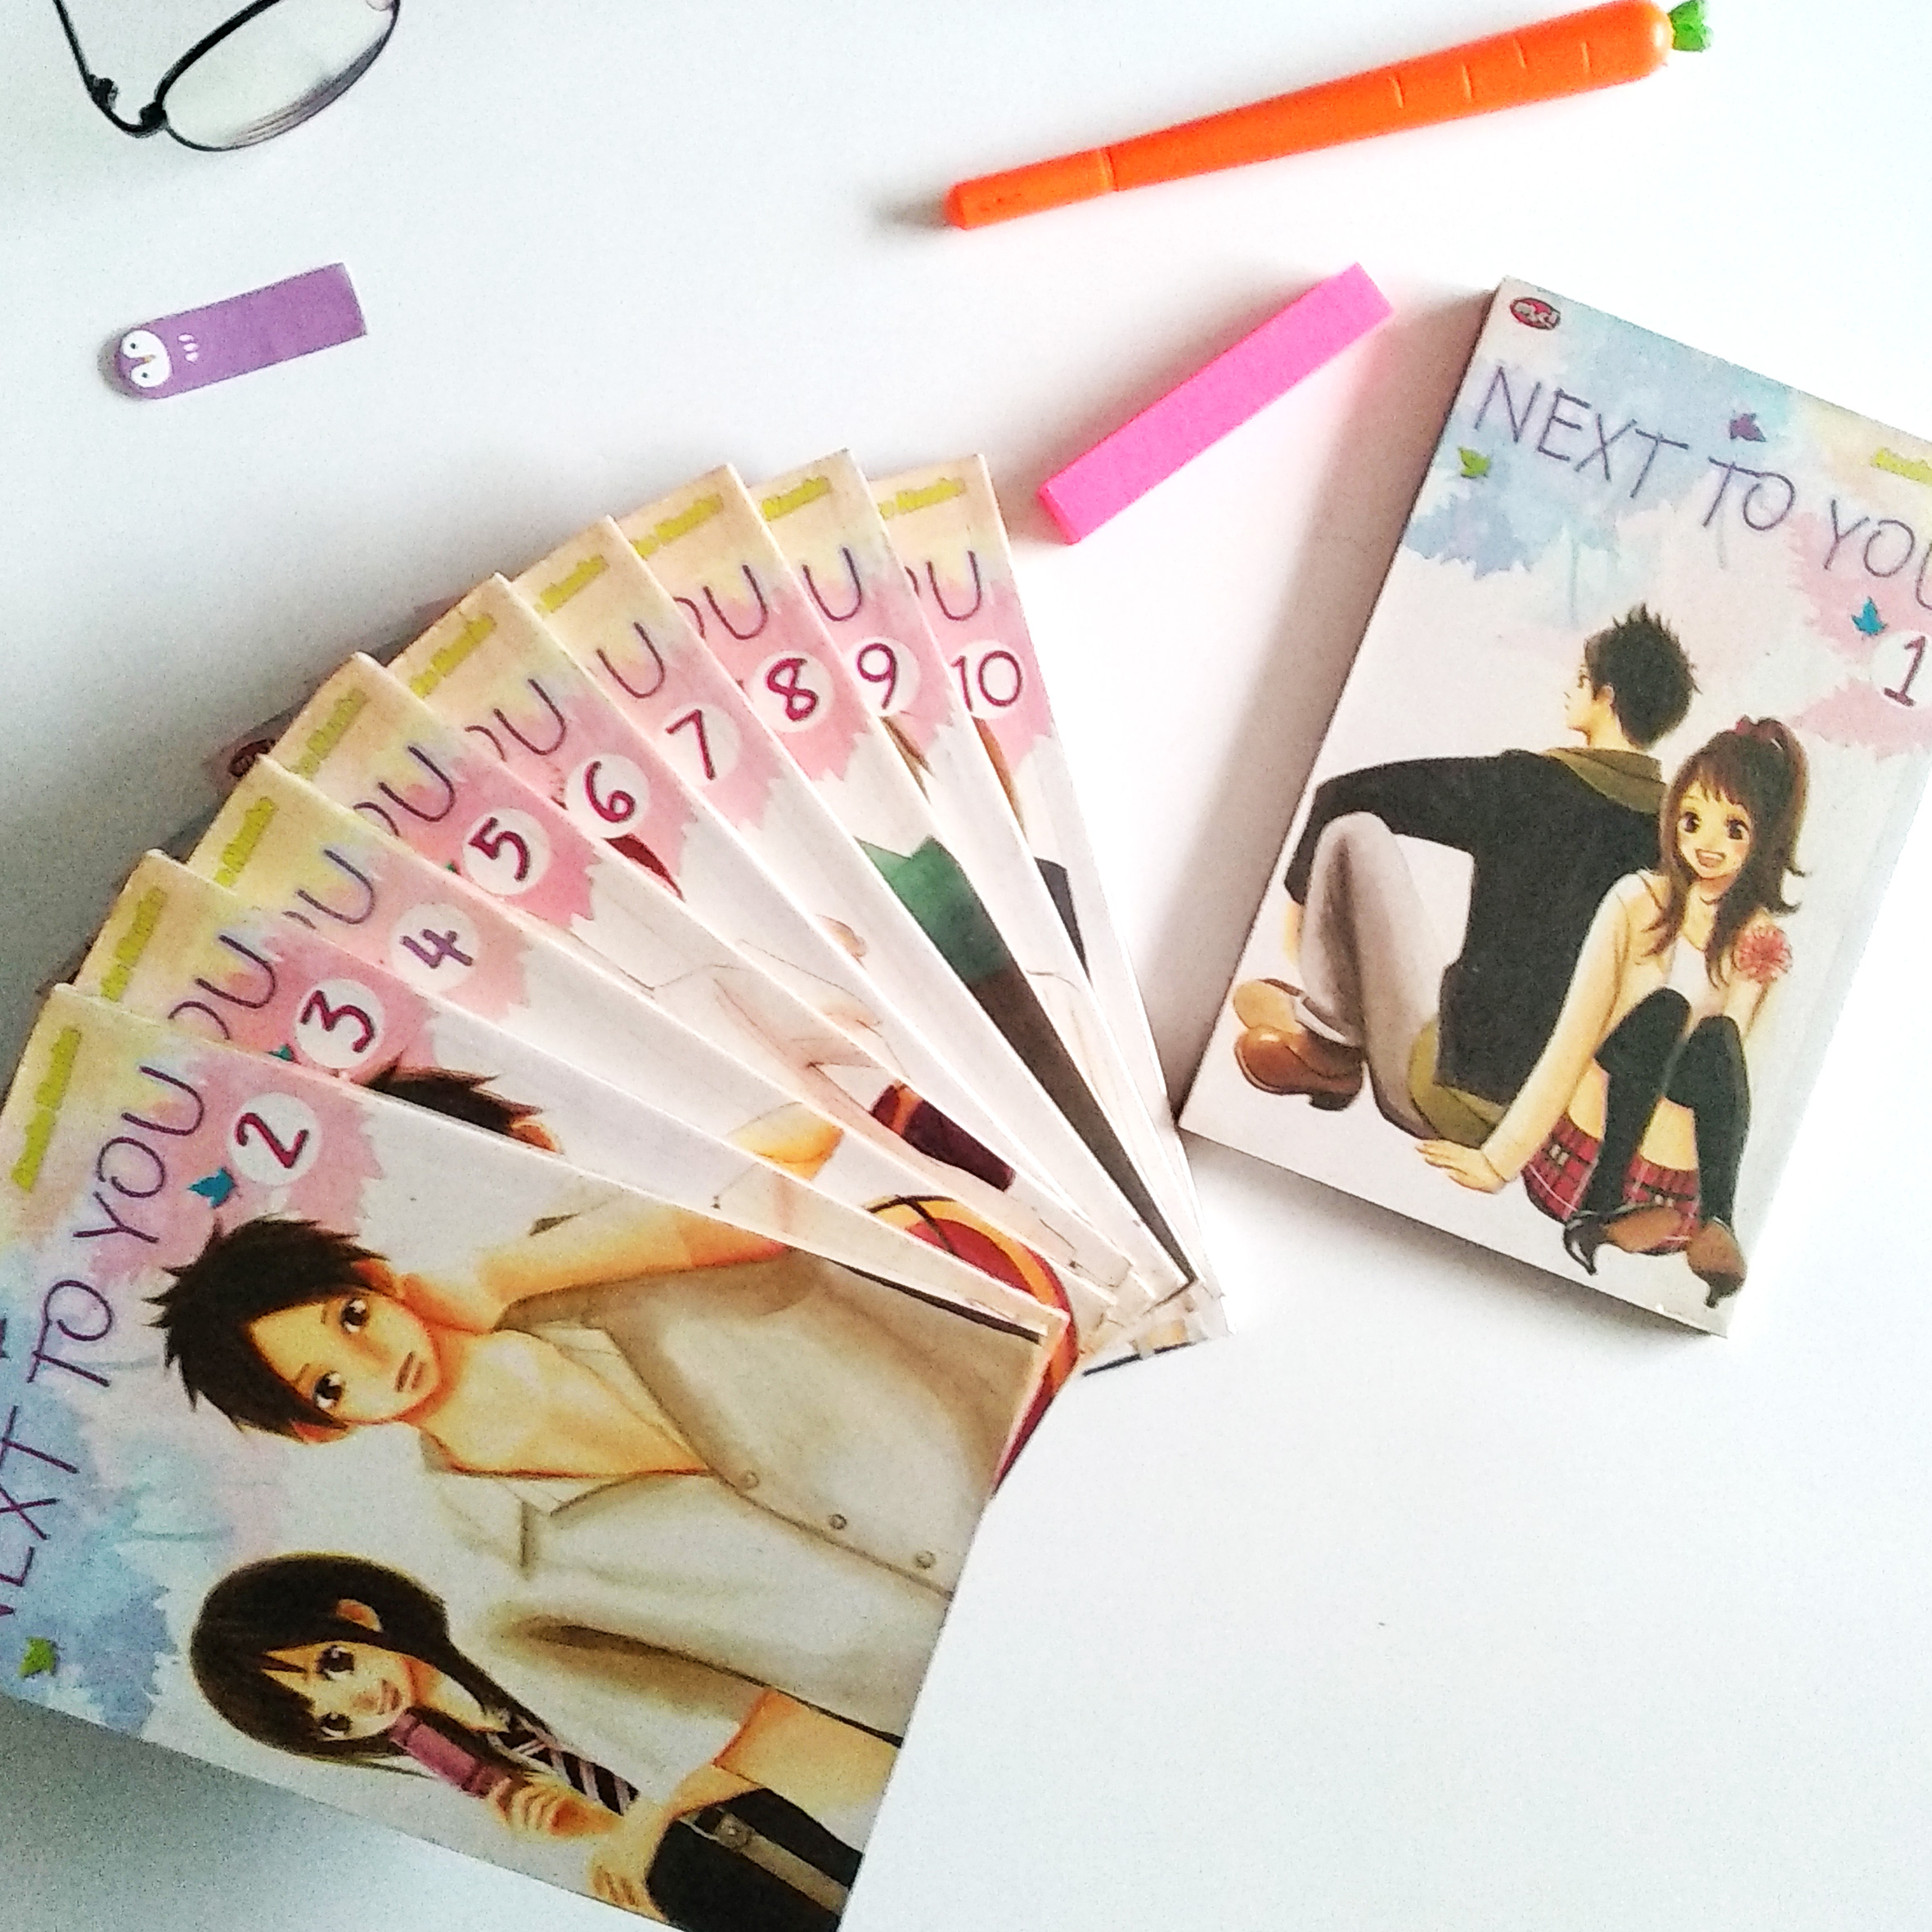 Next To You 1-10